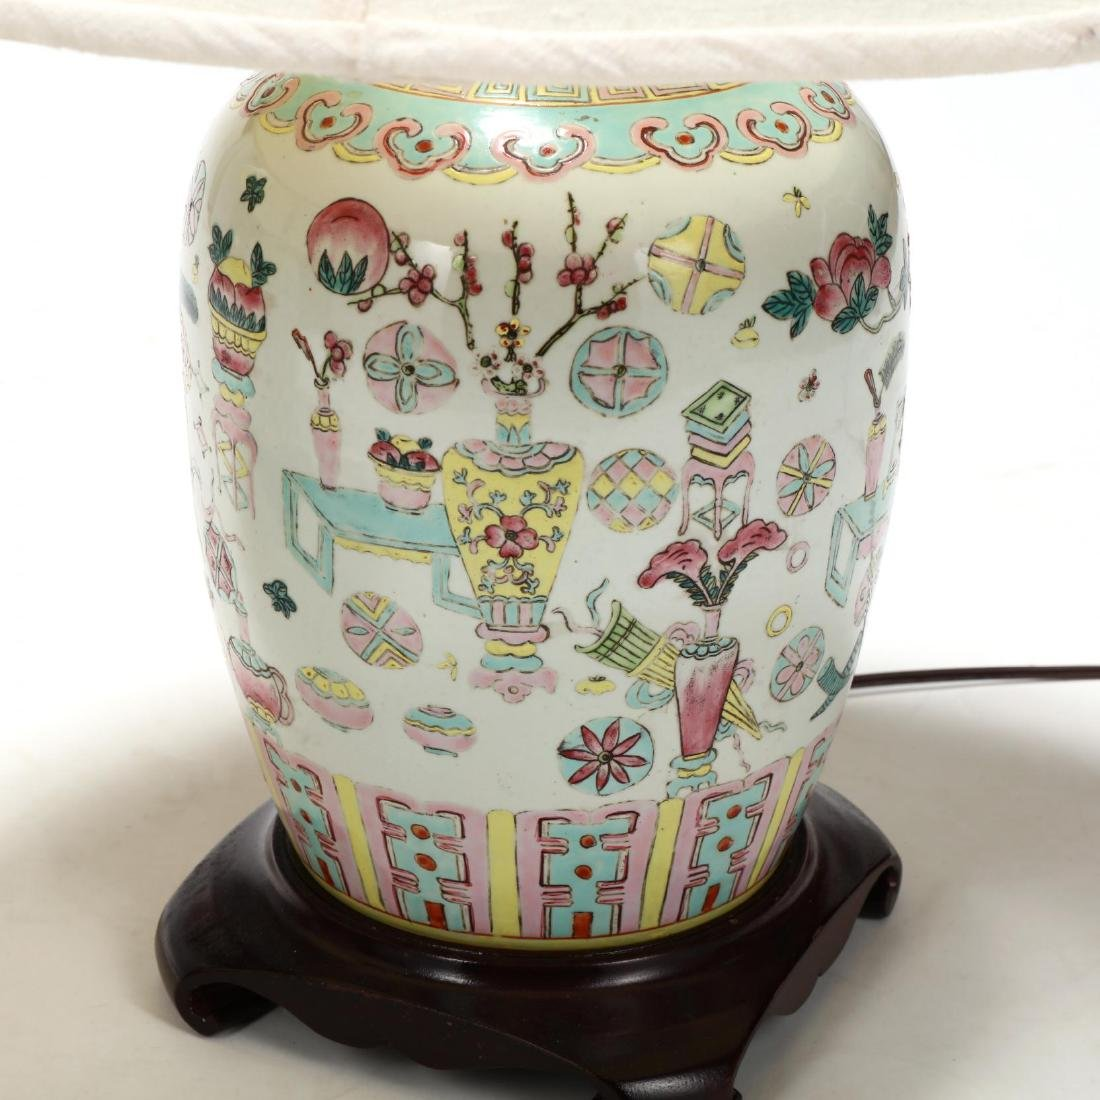 A Pair of Chinese Lamps with One Hundred Antiques Motif - 4